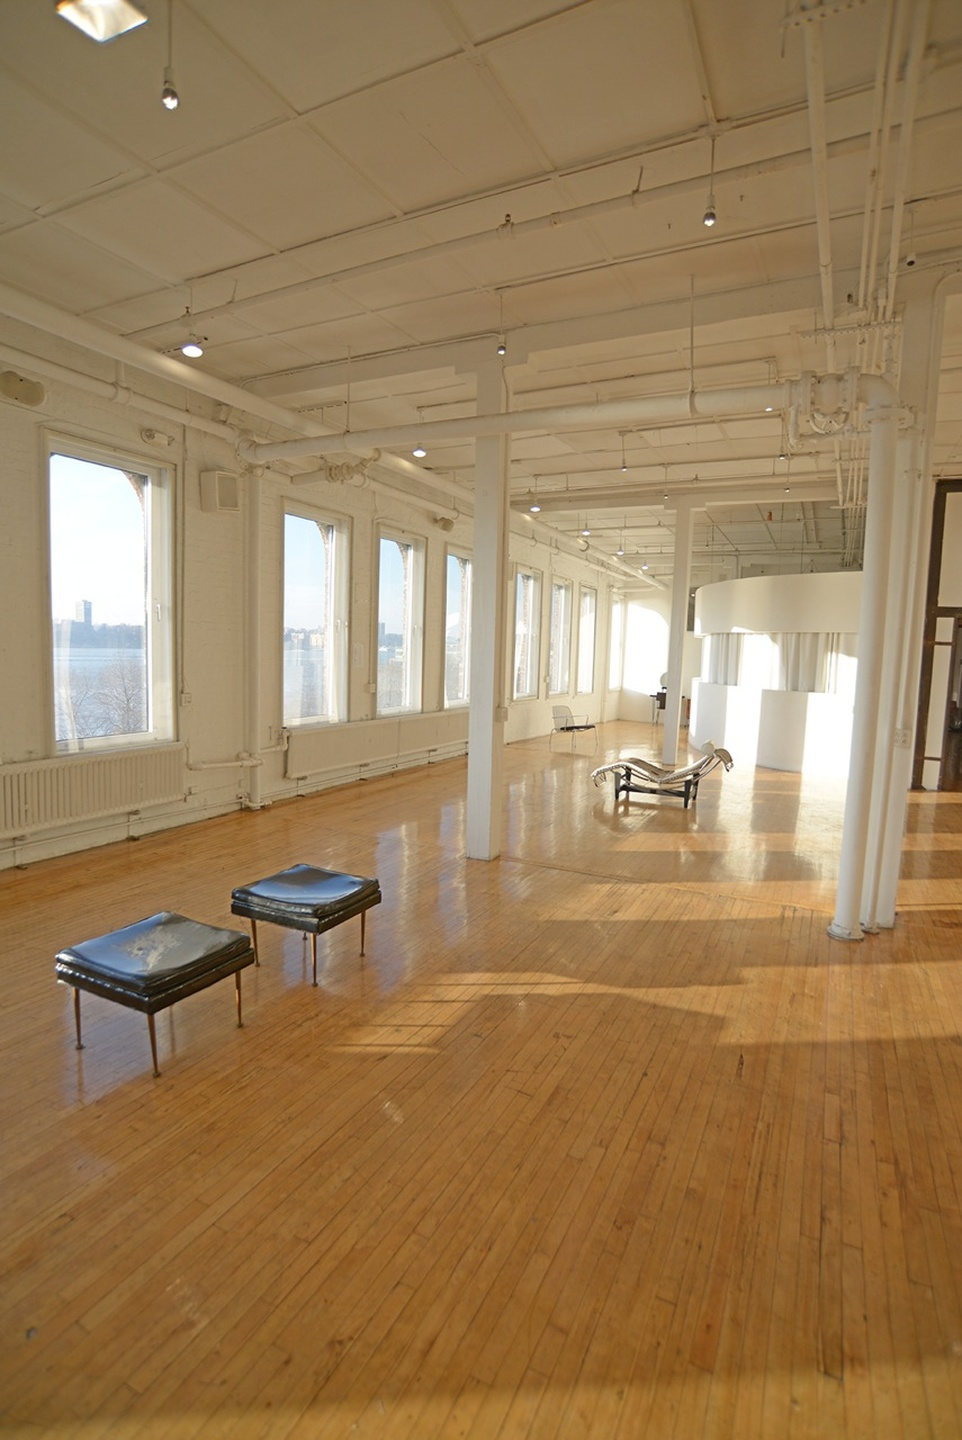 NYC corporate event venues Galerie d'art Michelson Studio image 2